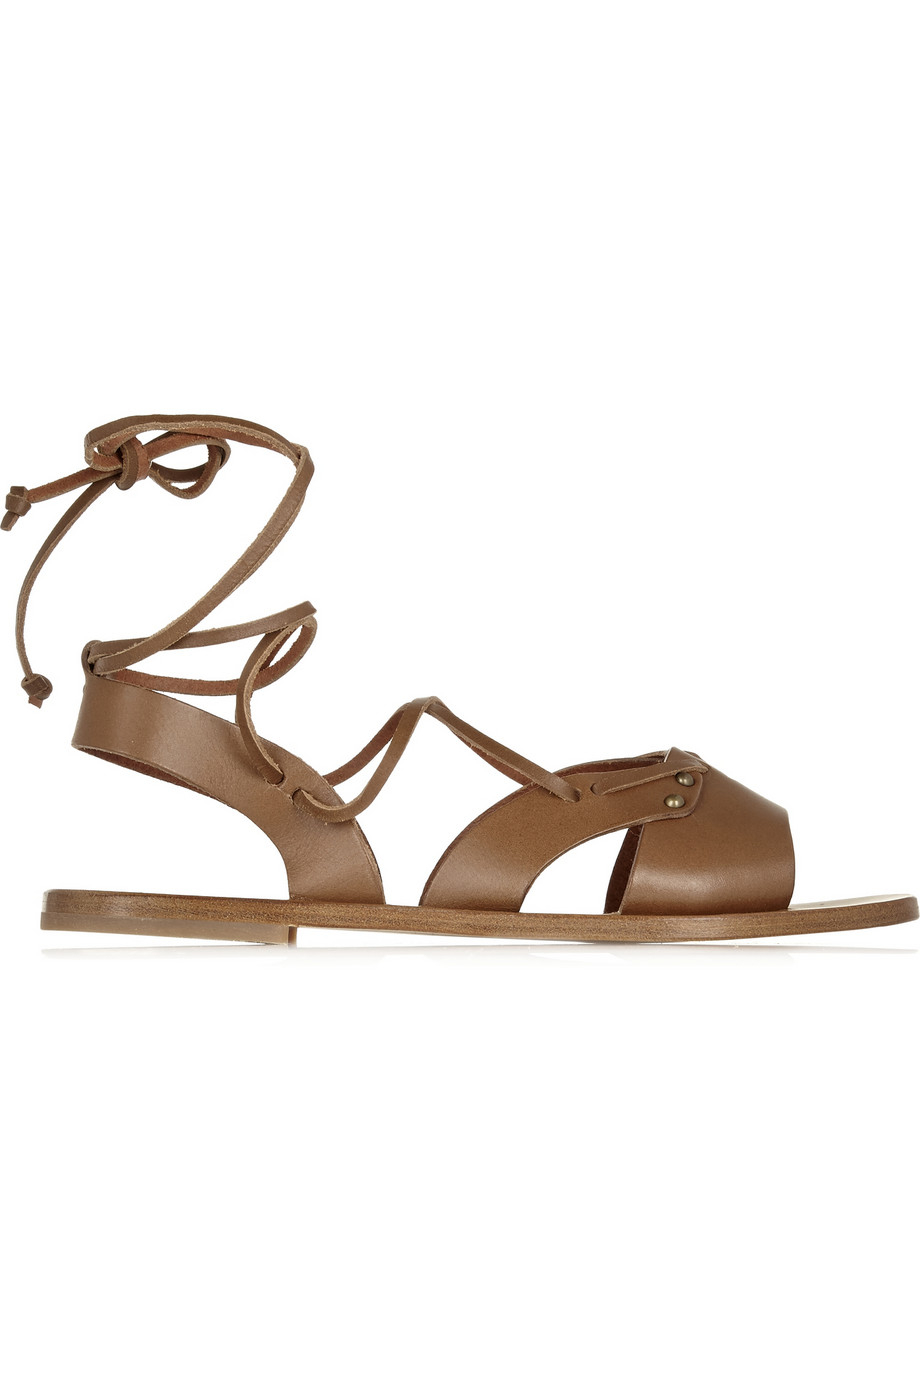 Pre-owned - Leather sandals Tomas Maier Discount Hot Sale Cheap Pay With Visa Good Selling For Sale Inexpensive Sale Online Supply 8NjLC